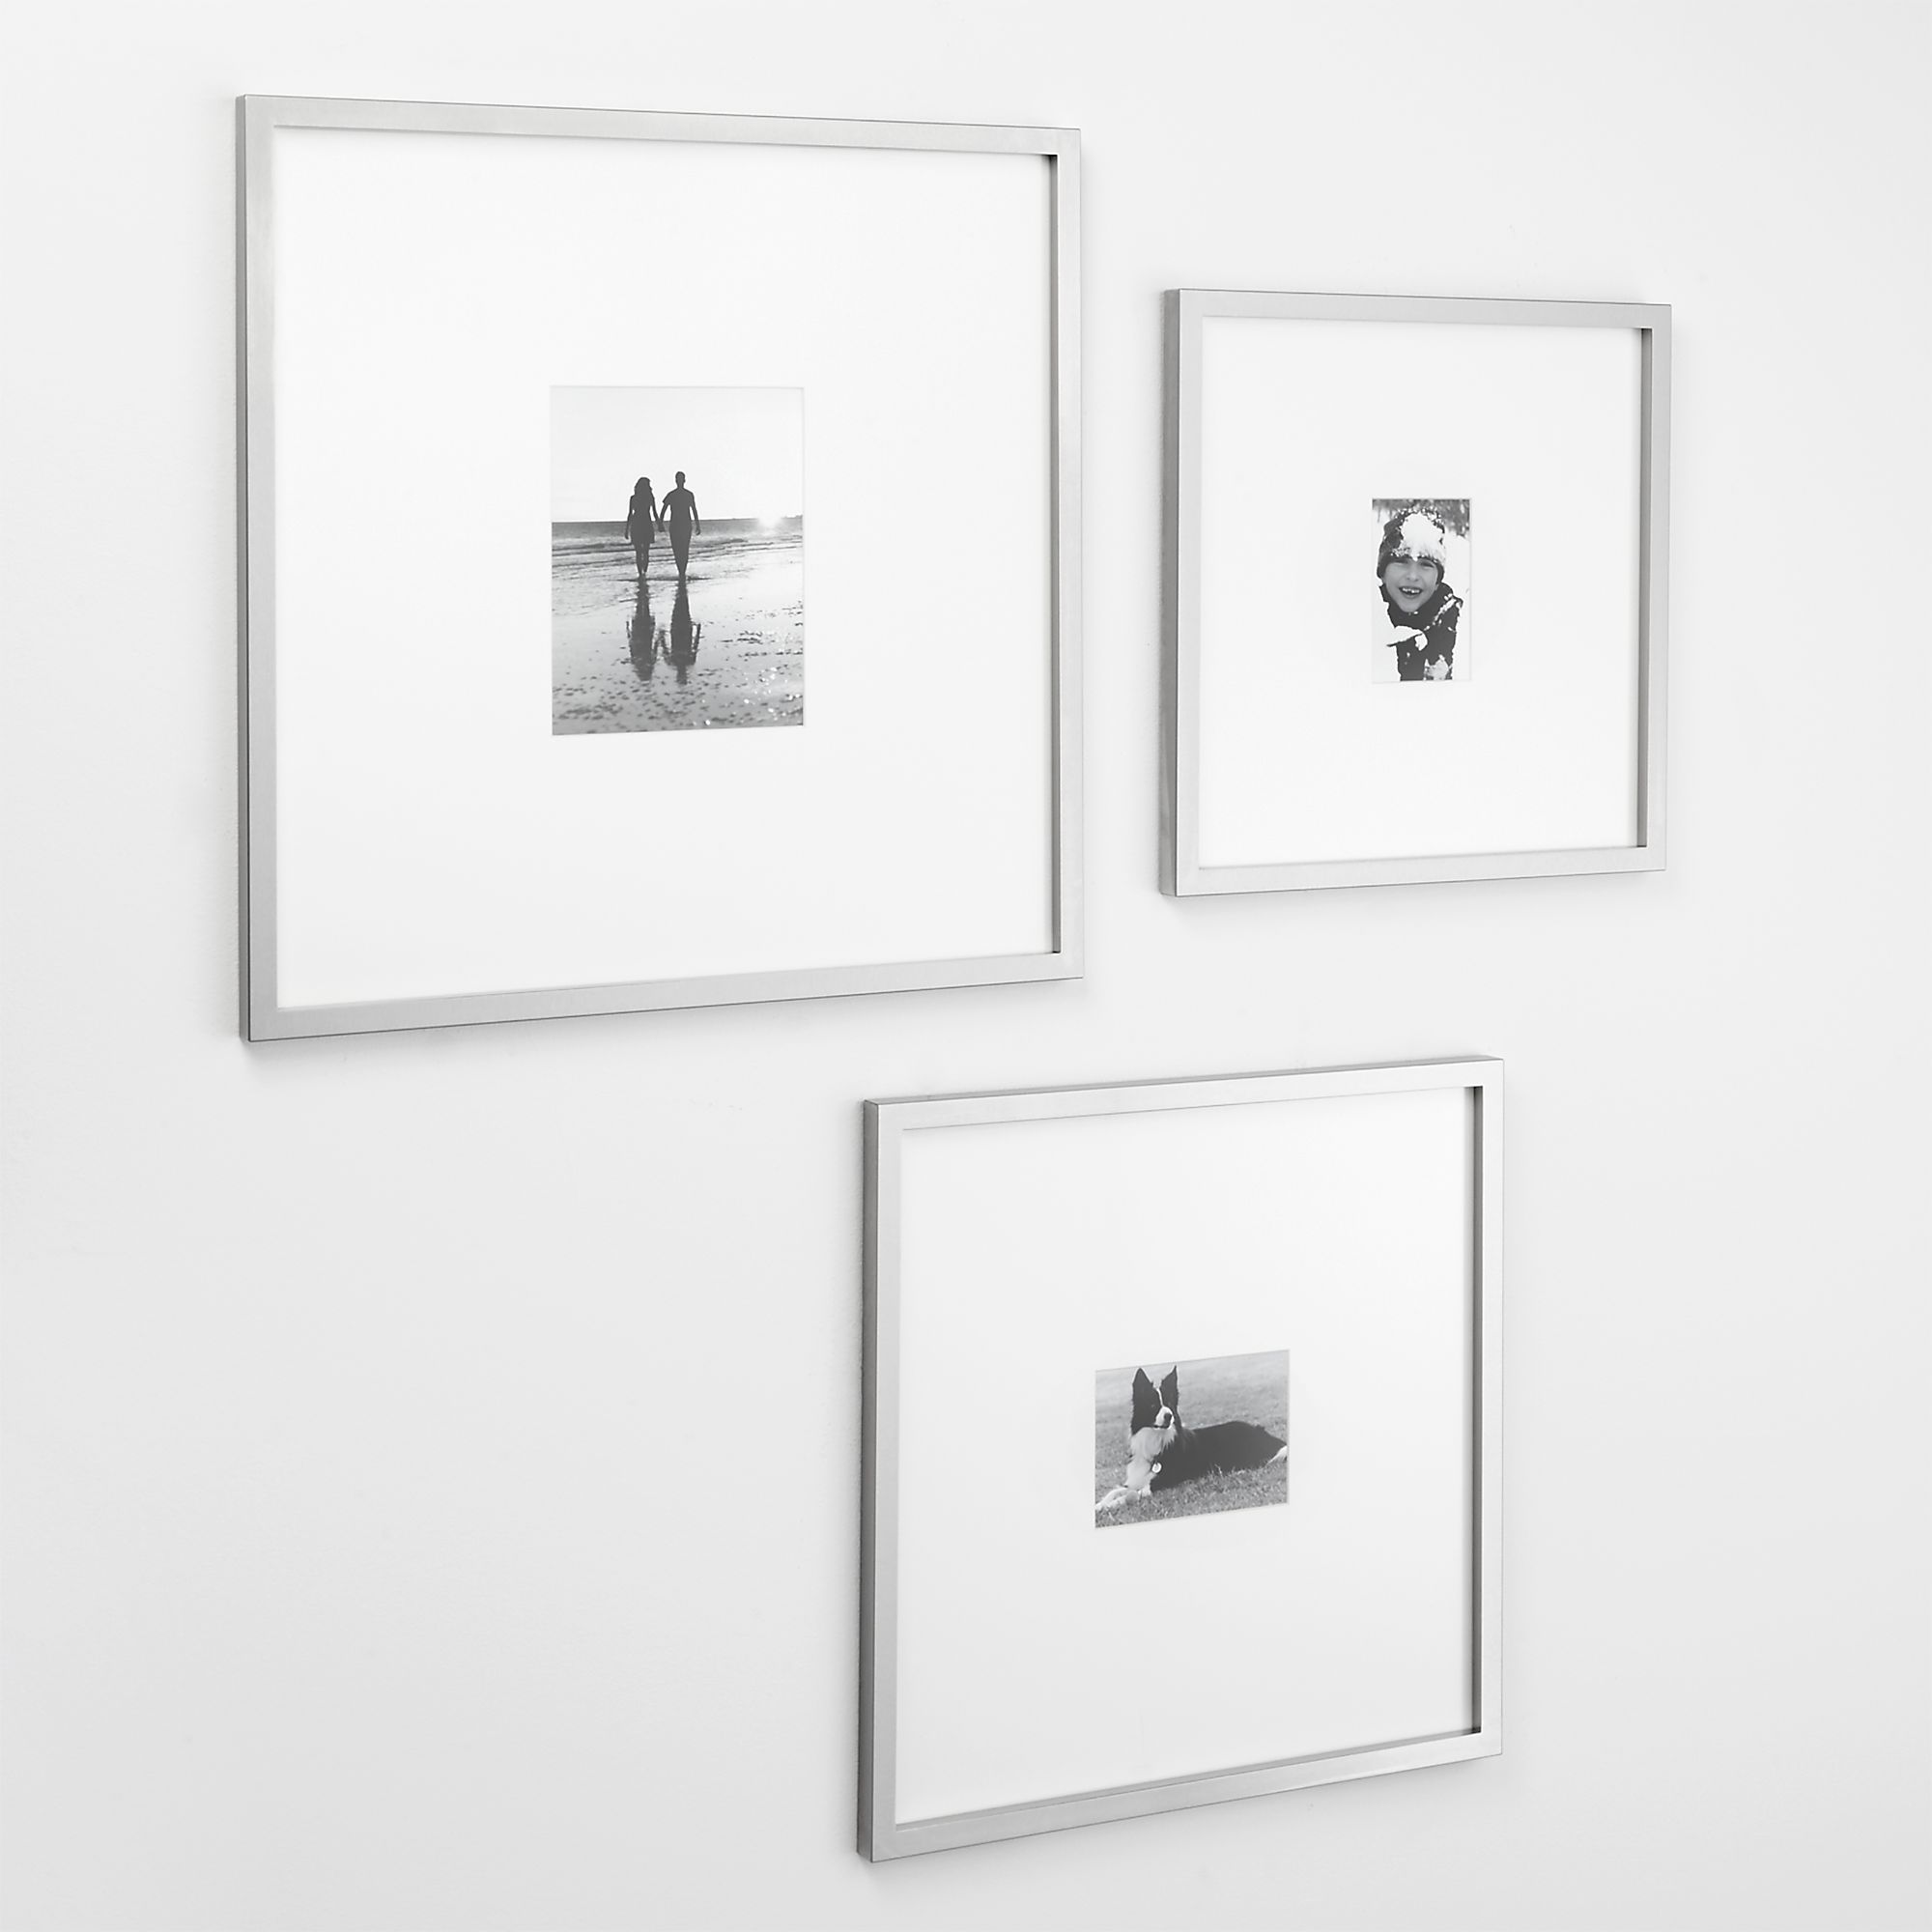 Brushed Silver Gallery Frames  | Crate and Barrel $40-$70